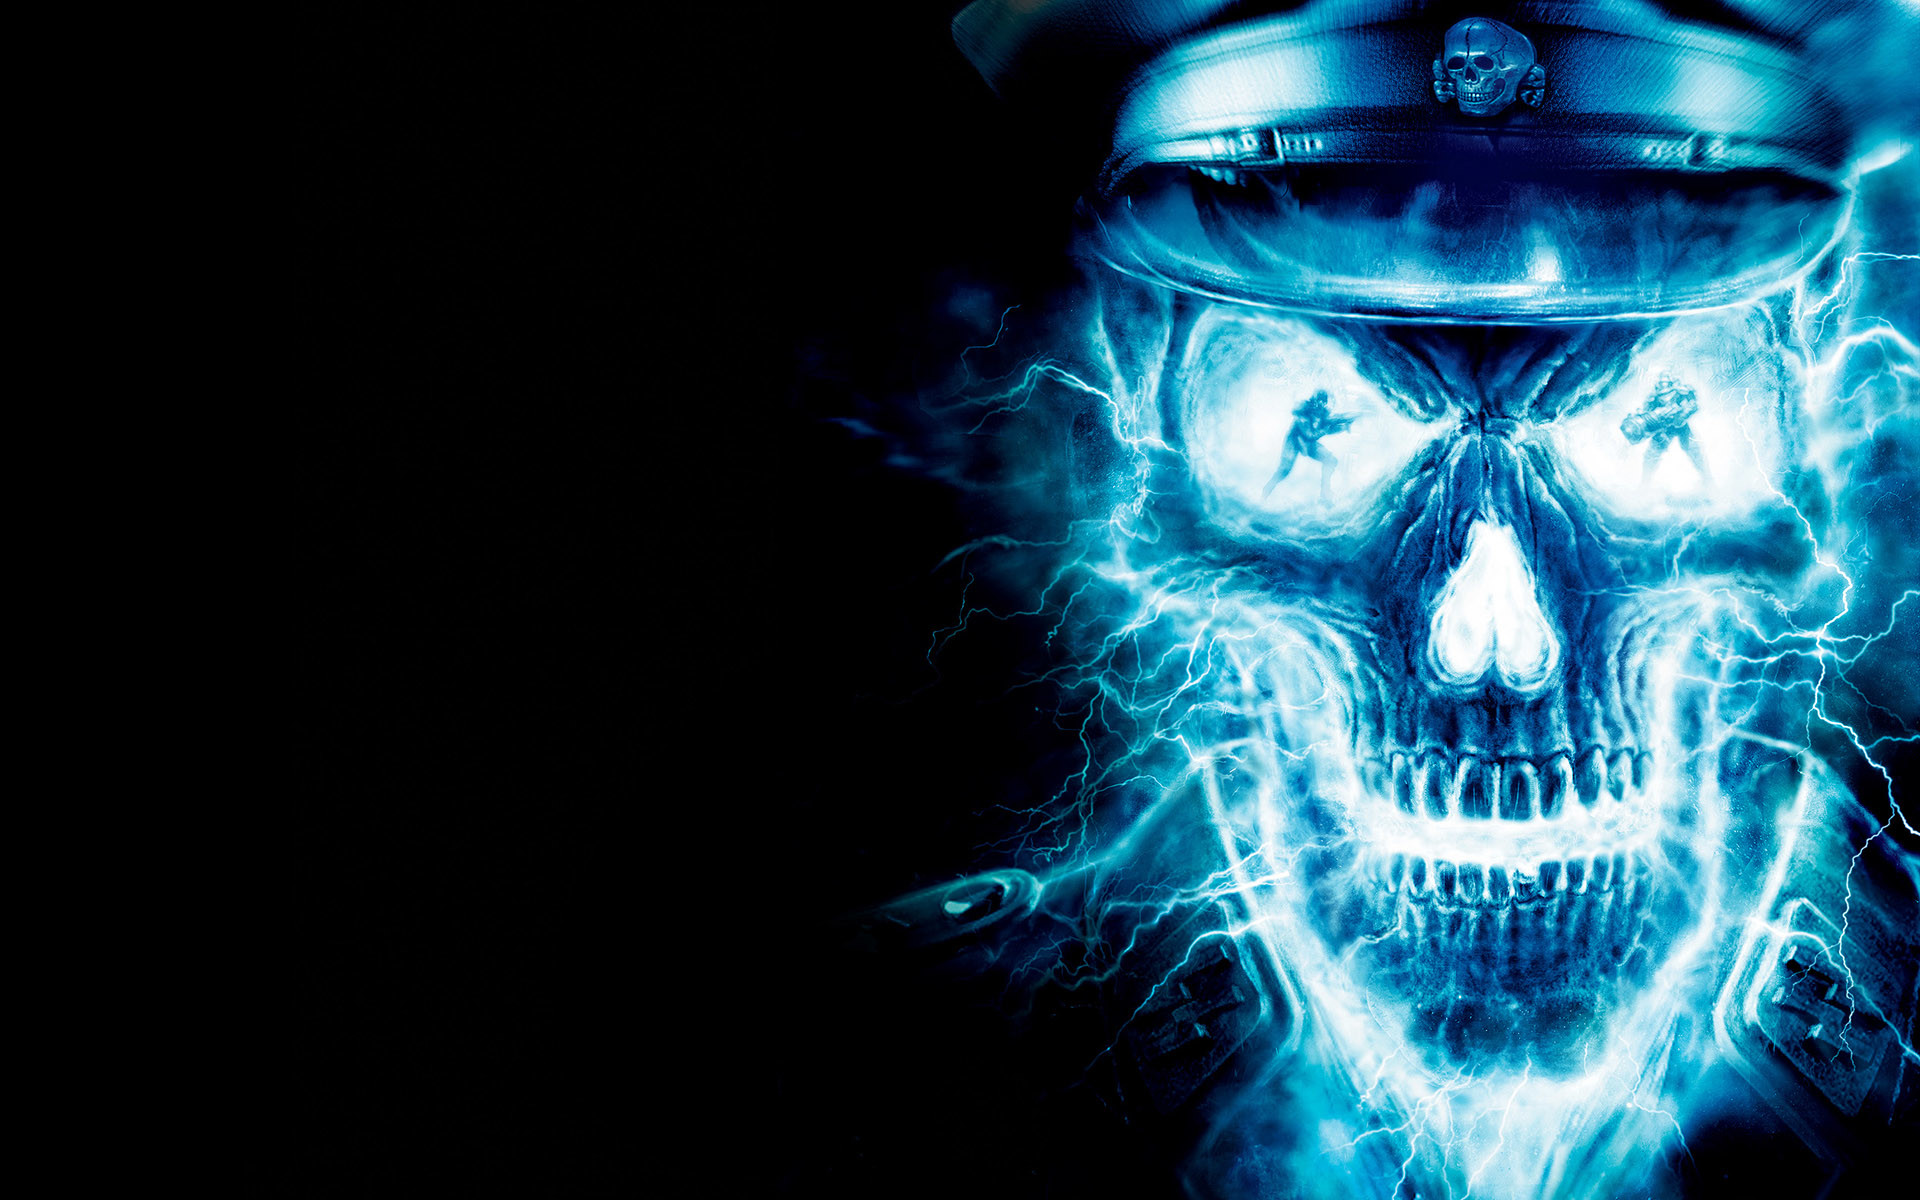 blue ghost rider wallpaper (59+ images)